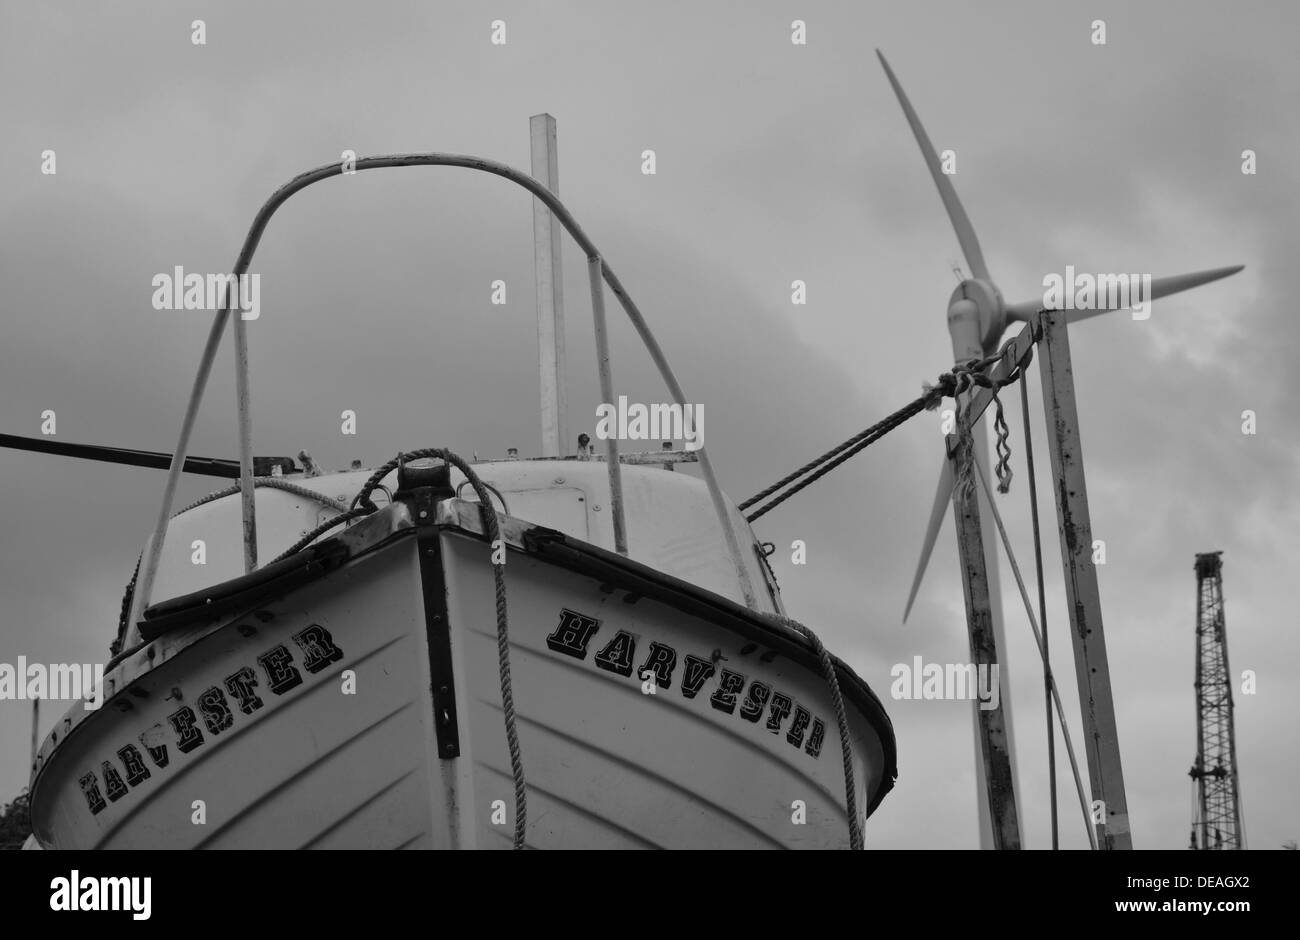 boat and wind turbine in erith yacht club in kent Stock Photo